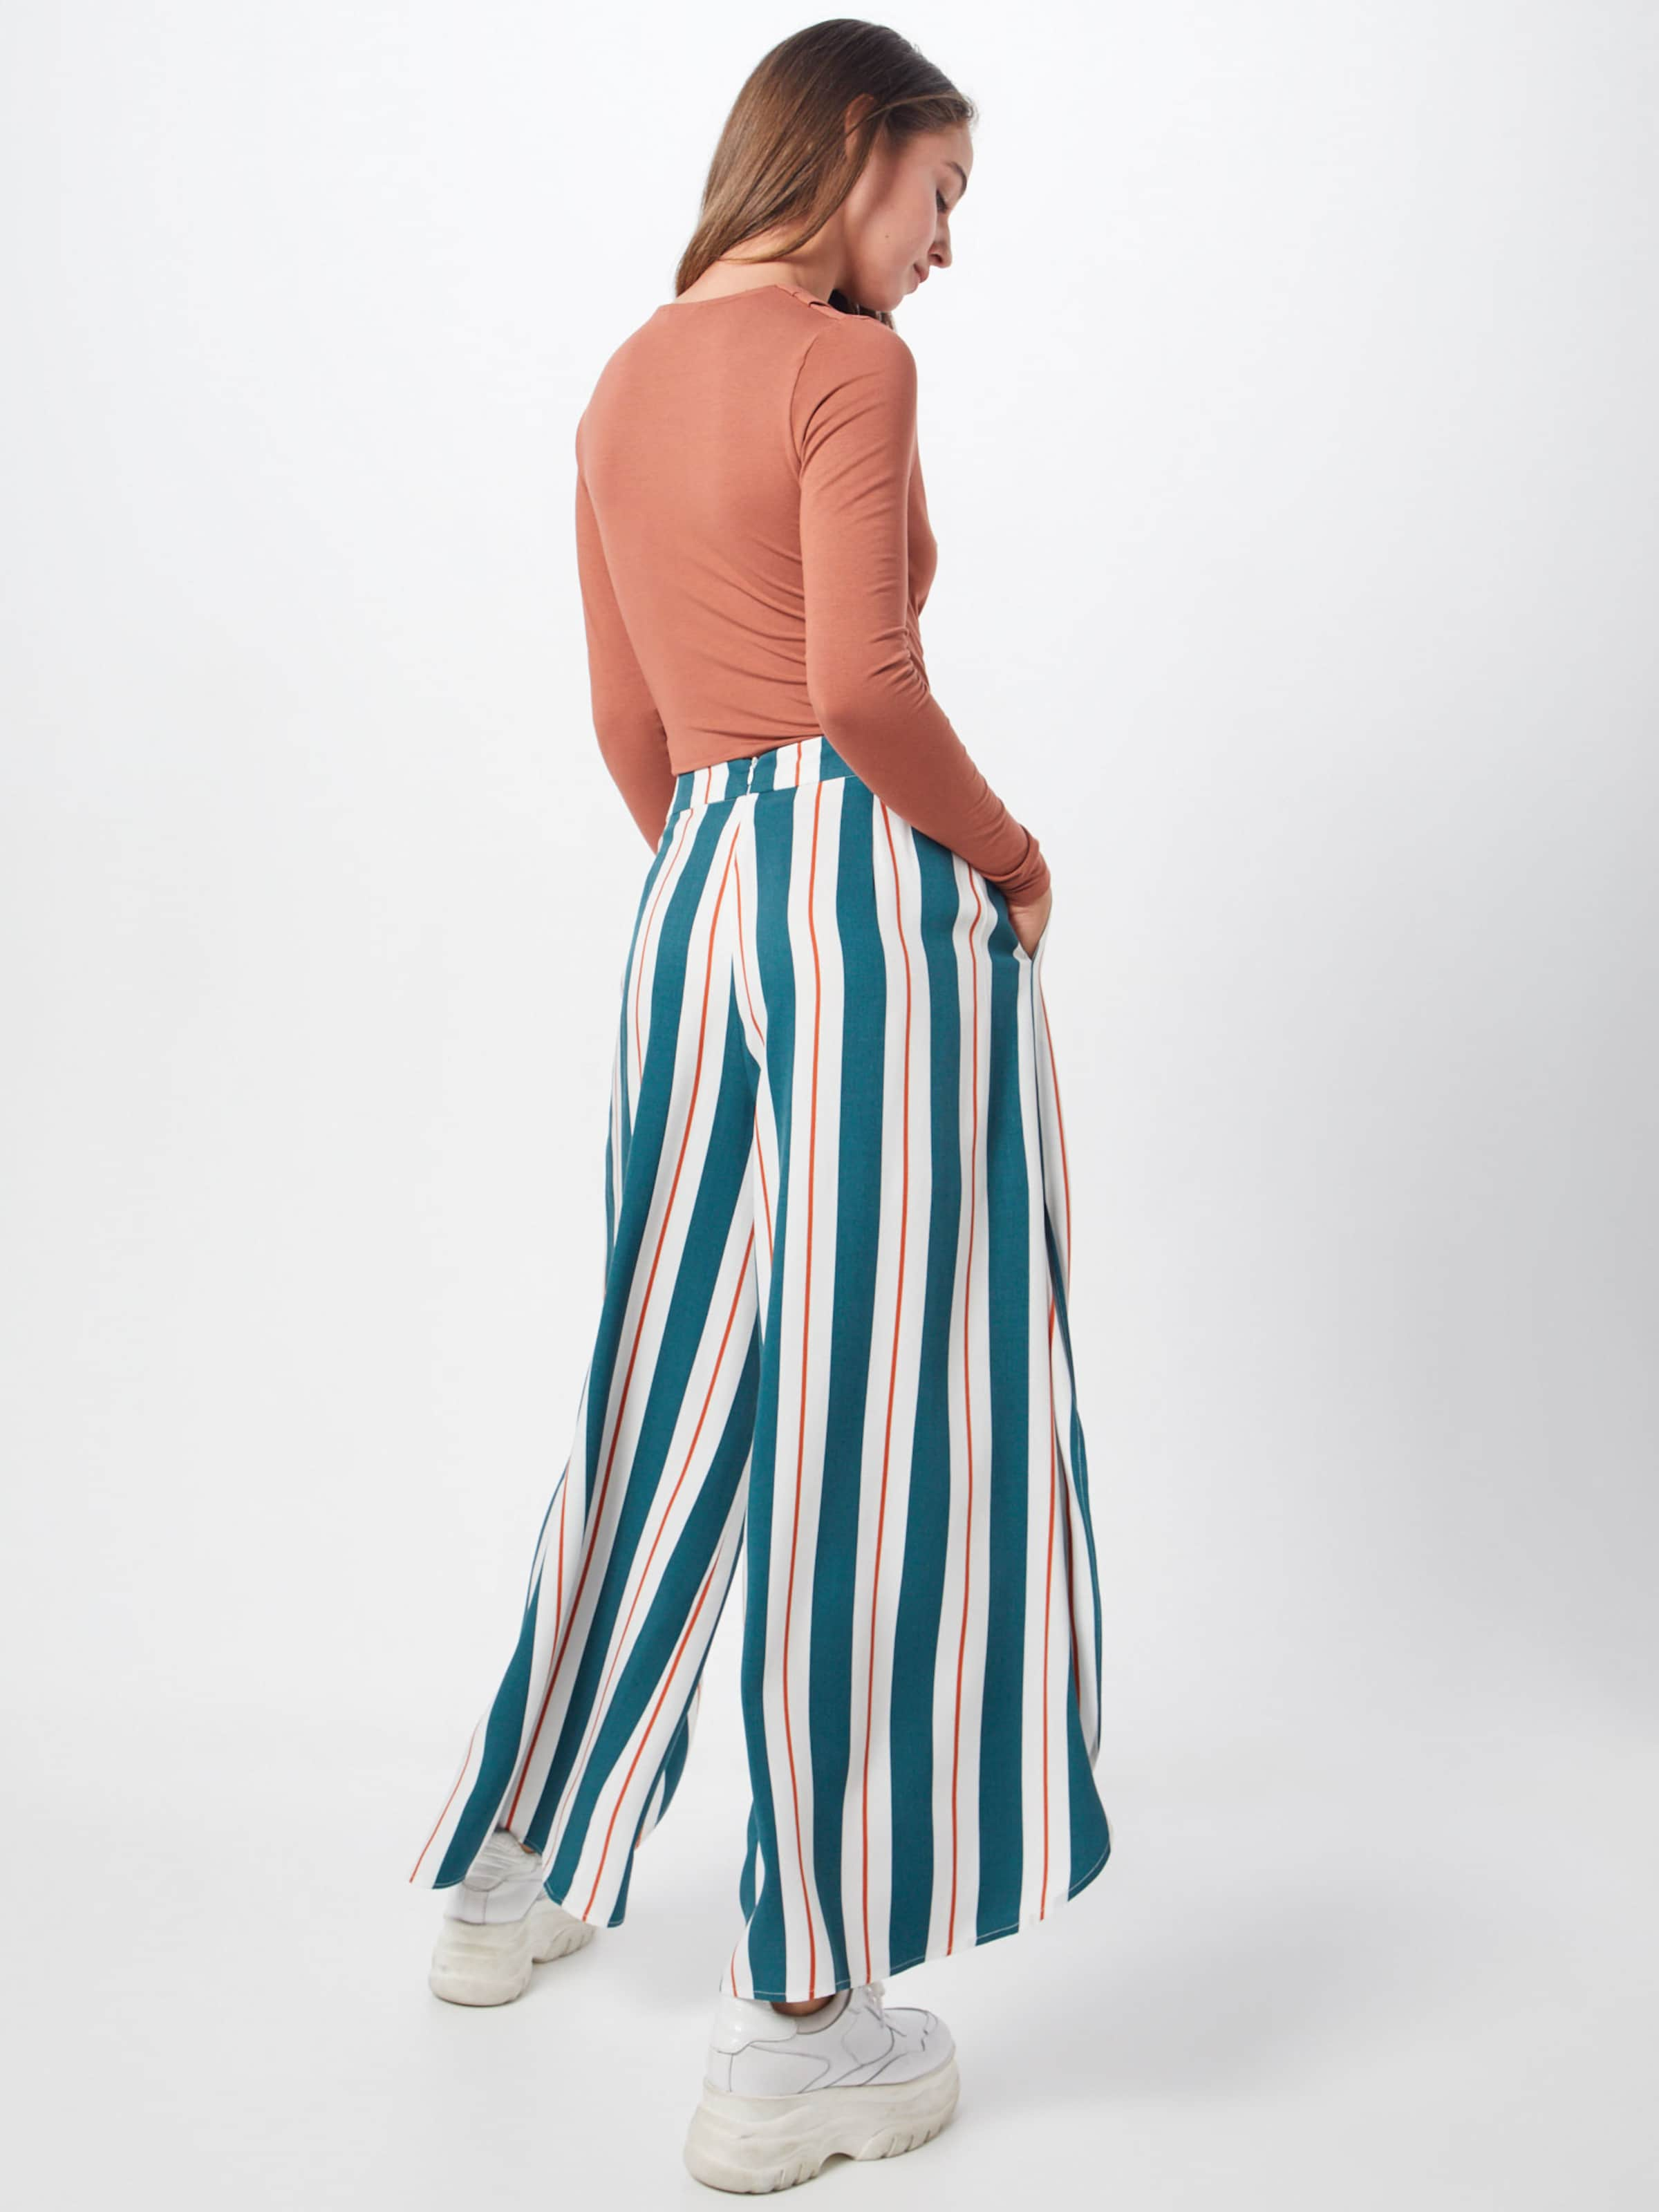 'the Native Erykah In Weinrot TanneRot Youth Pant' Hose Ygvy7fb6